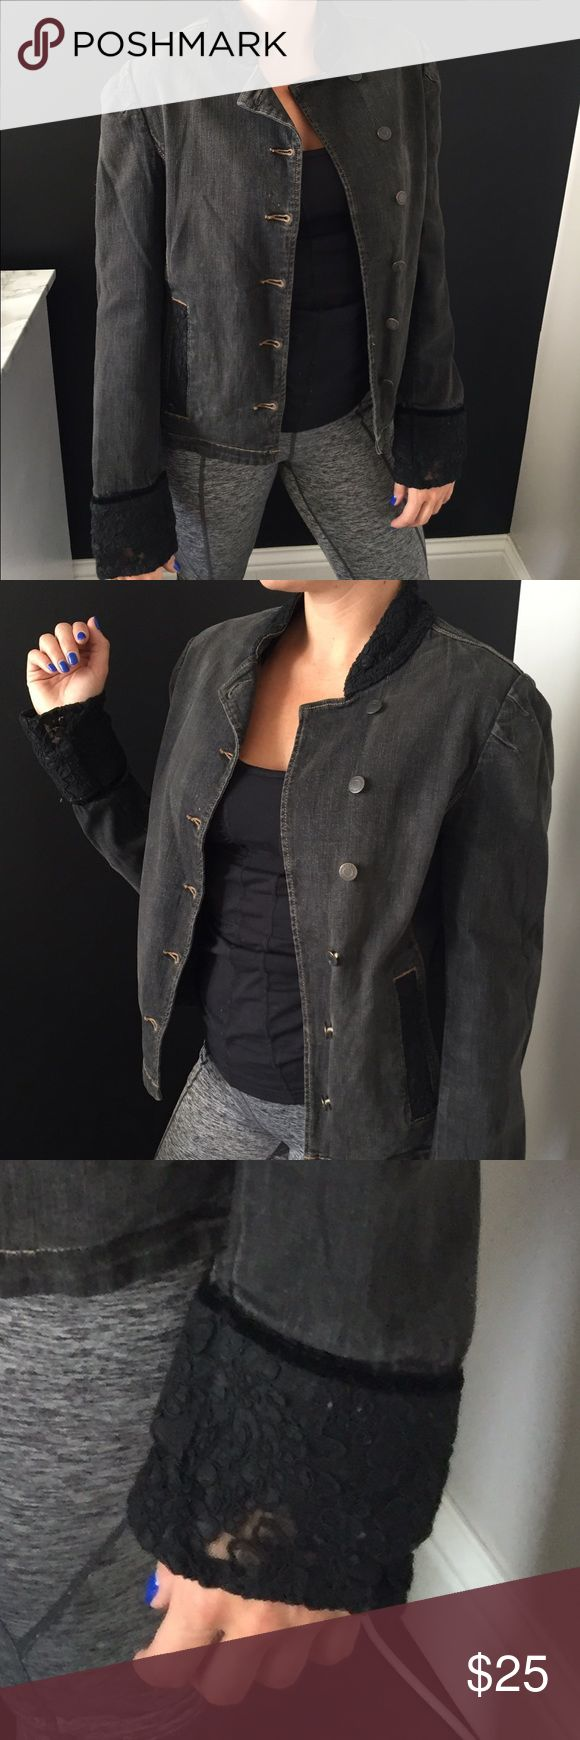 Black denim jacket with lace detailing Black denim jacket with black lace detailing on collar and bottom of sleeves.  Modern military cut jacket with buttons down the front. Express Jackets & Coats